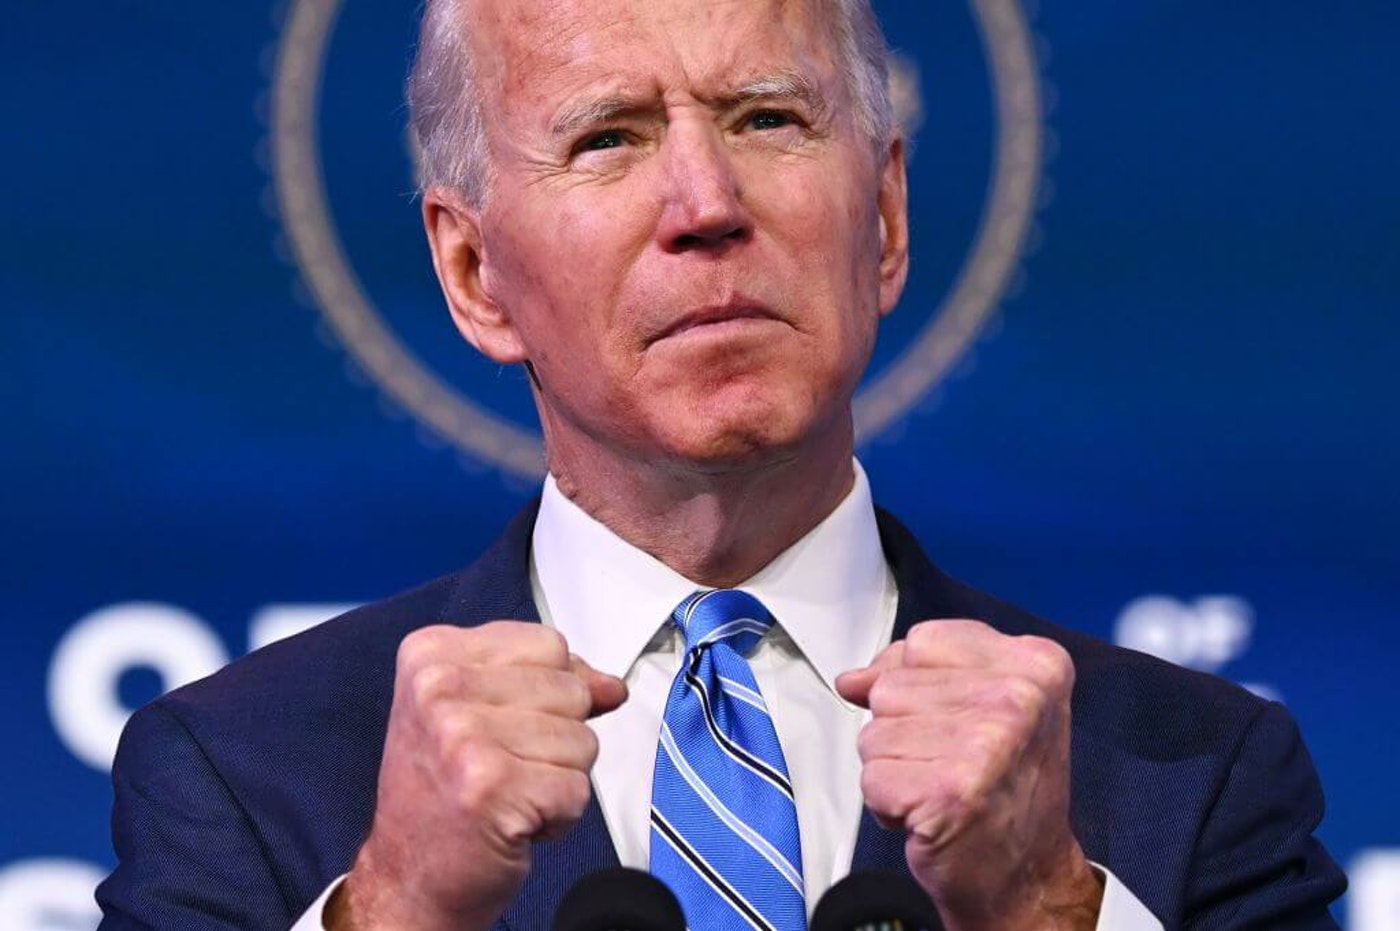 US President-elect Joe Biden delivers remarks on the public health and economic crises at The Queen theater in Wilmington, Delaware on January 14, 2021. - President-elect Joe (Photo by JIM WATSON/AFP via Getty Images)